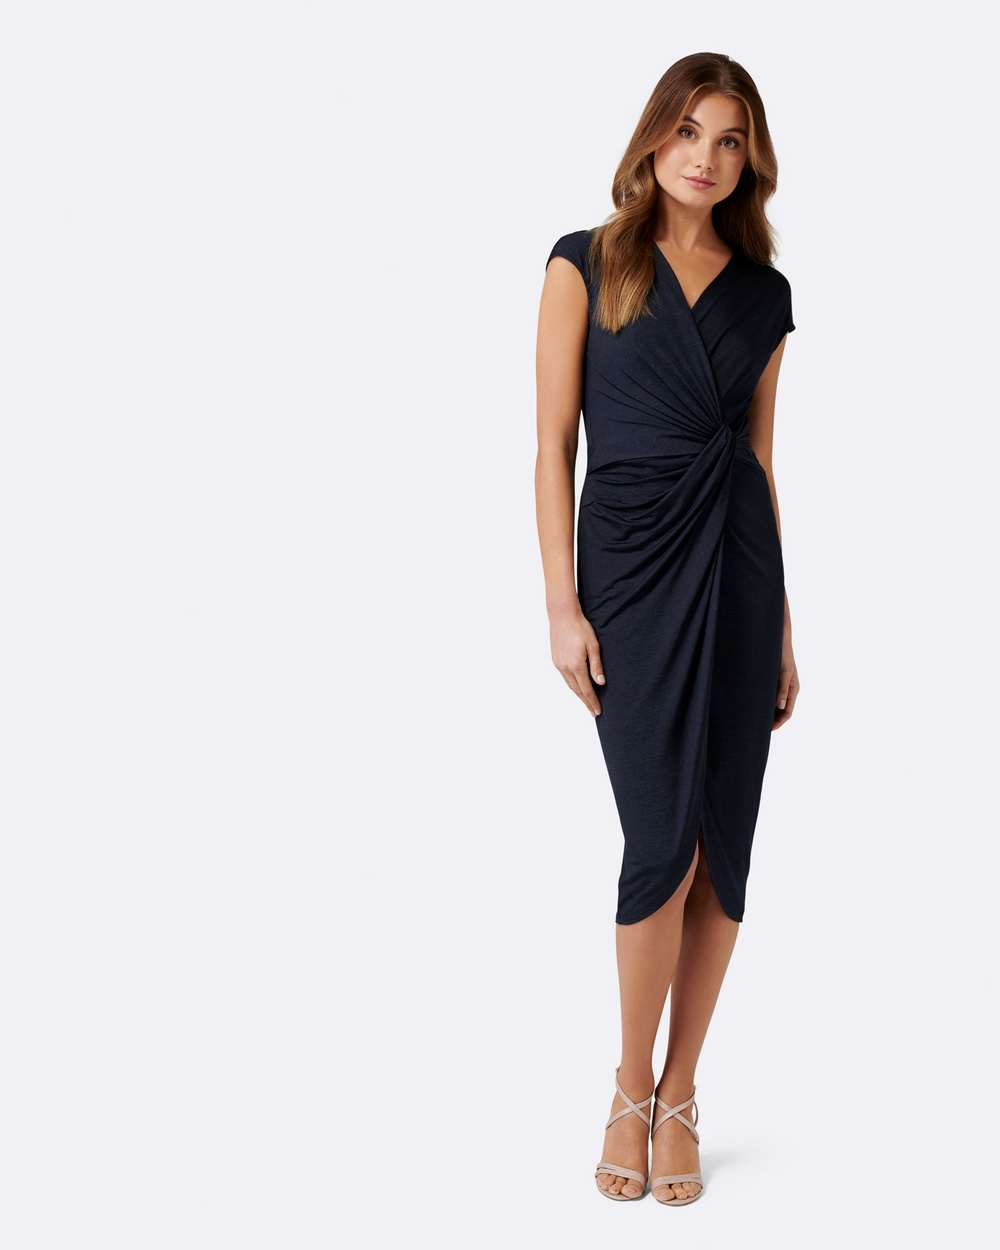 Forever New Tiffany Twist Dress Bridesmaid Dresses Navy Tiffany Twist Dress